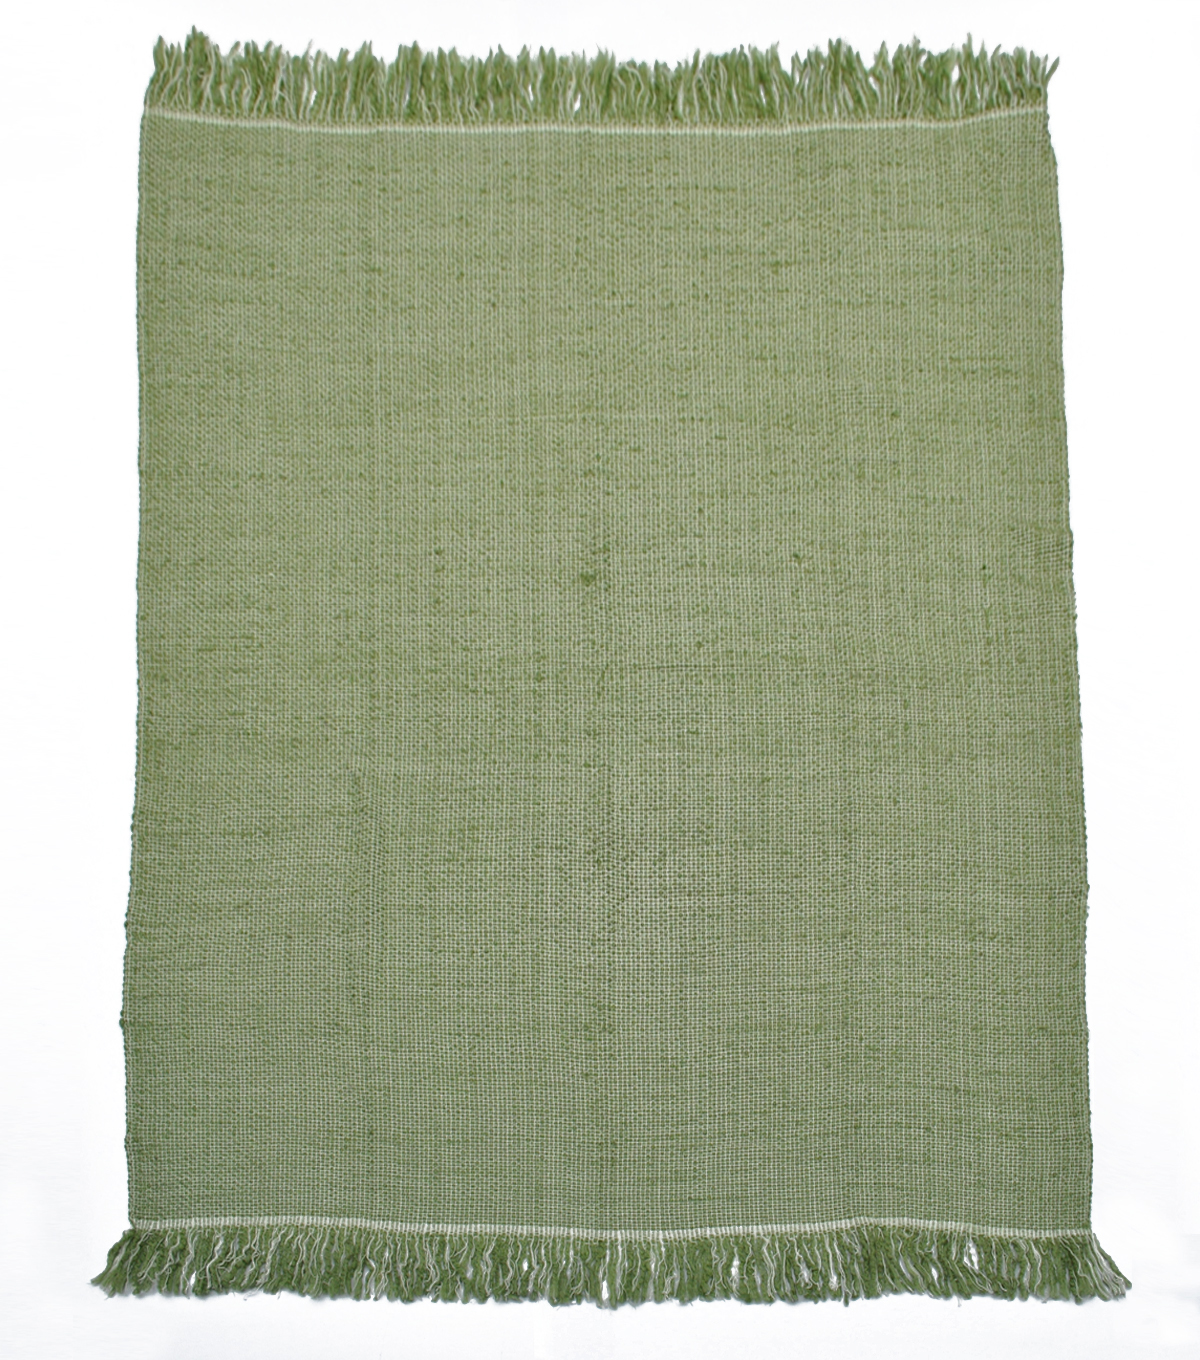 Simply Autumn 50\u0027\u0027x60\u0027\u0027 Textured Throw-Sage Green & White